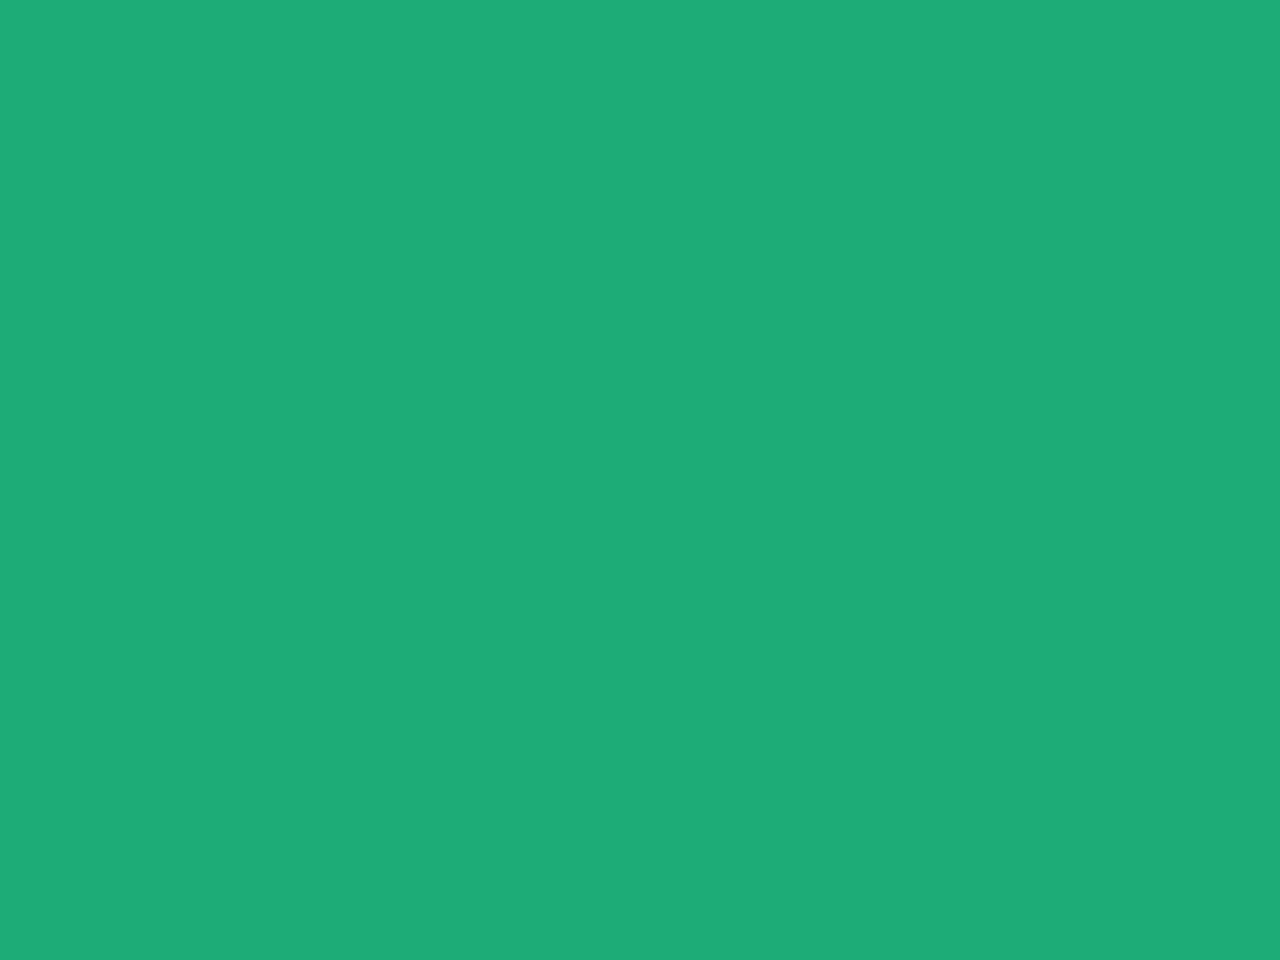 1280x960 Green Crayola Solid Color Background